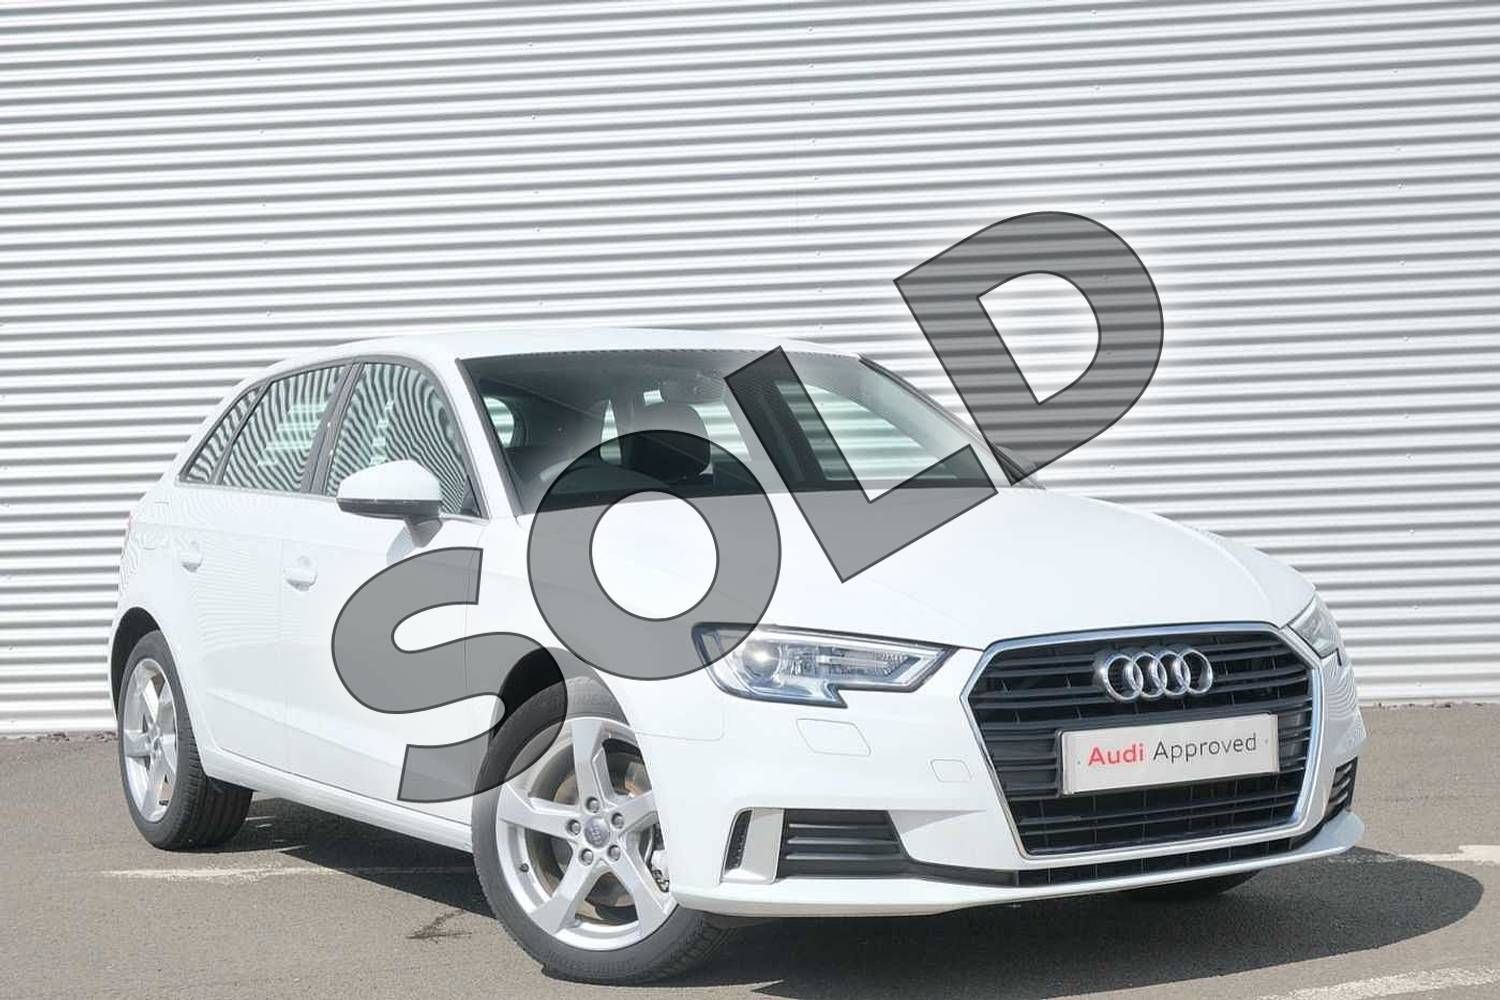 2020 Audi A3 Sportback 40 TFSI Sport 5dr S Tronic in Glacier White Metallic at Coventry Audi